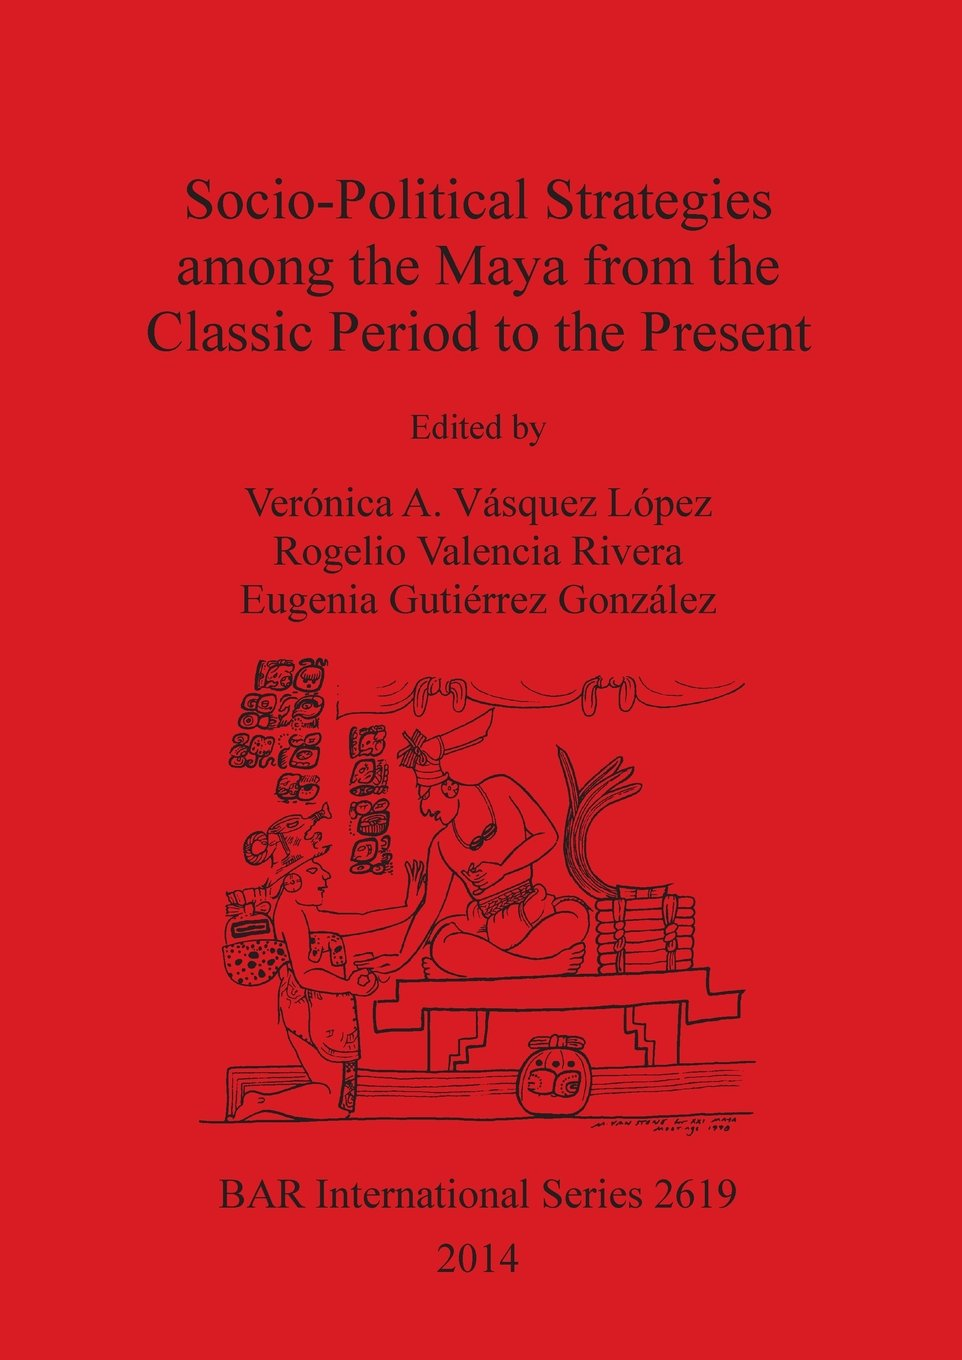 Download Socio-Political Strategies Among the Maya from the Classic Period to the Present (BAR International Series) PDF